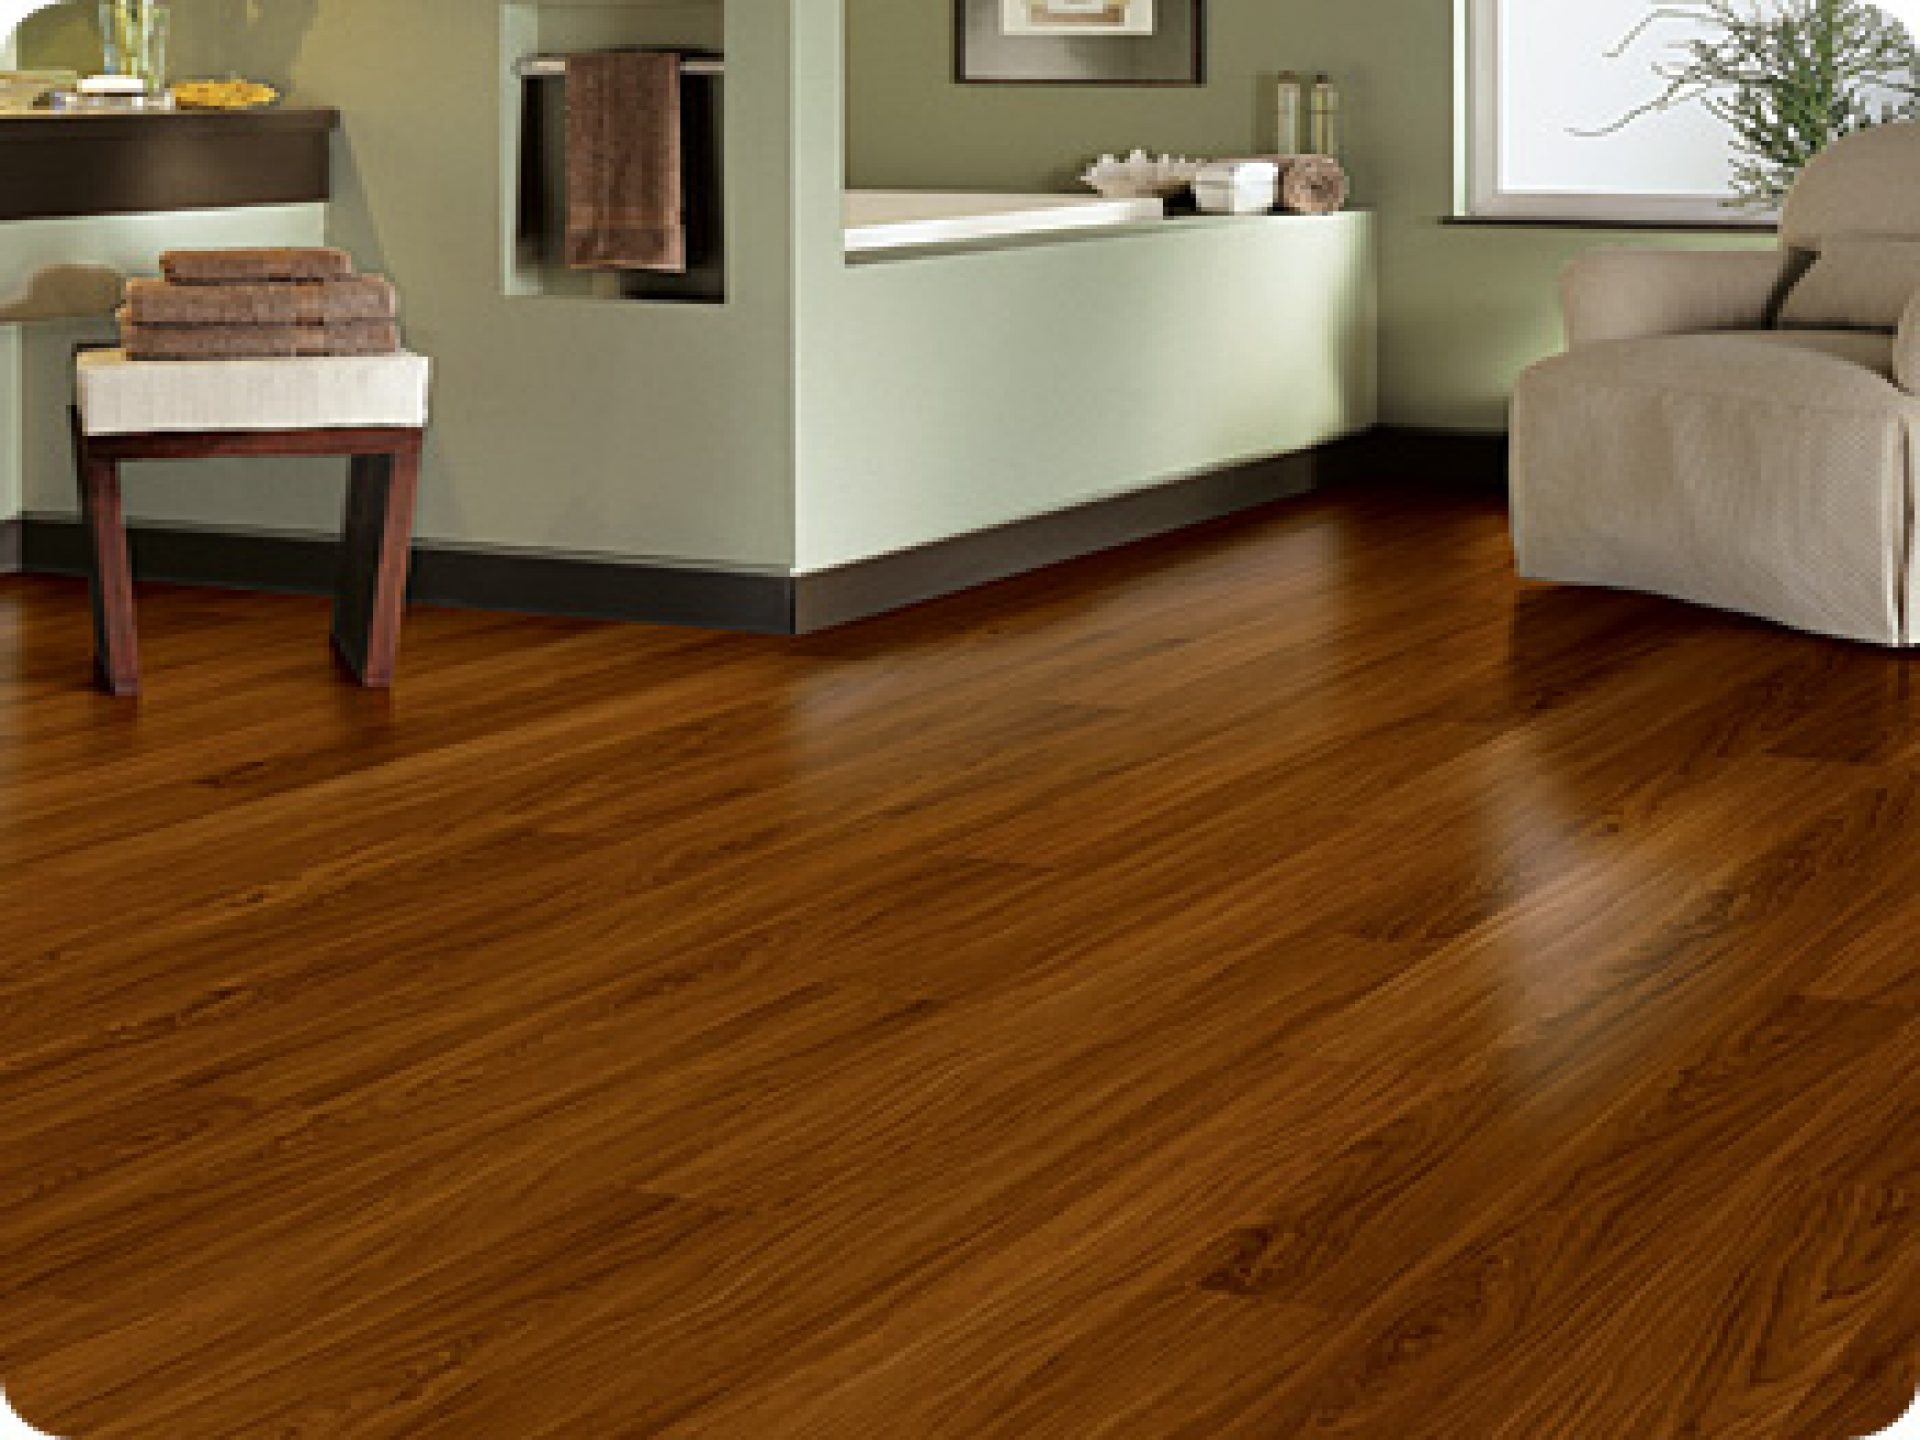 Buy high quality pvc flooring in dubai abu dhabi acroos for Pvc hardwood flooring